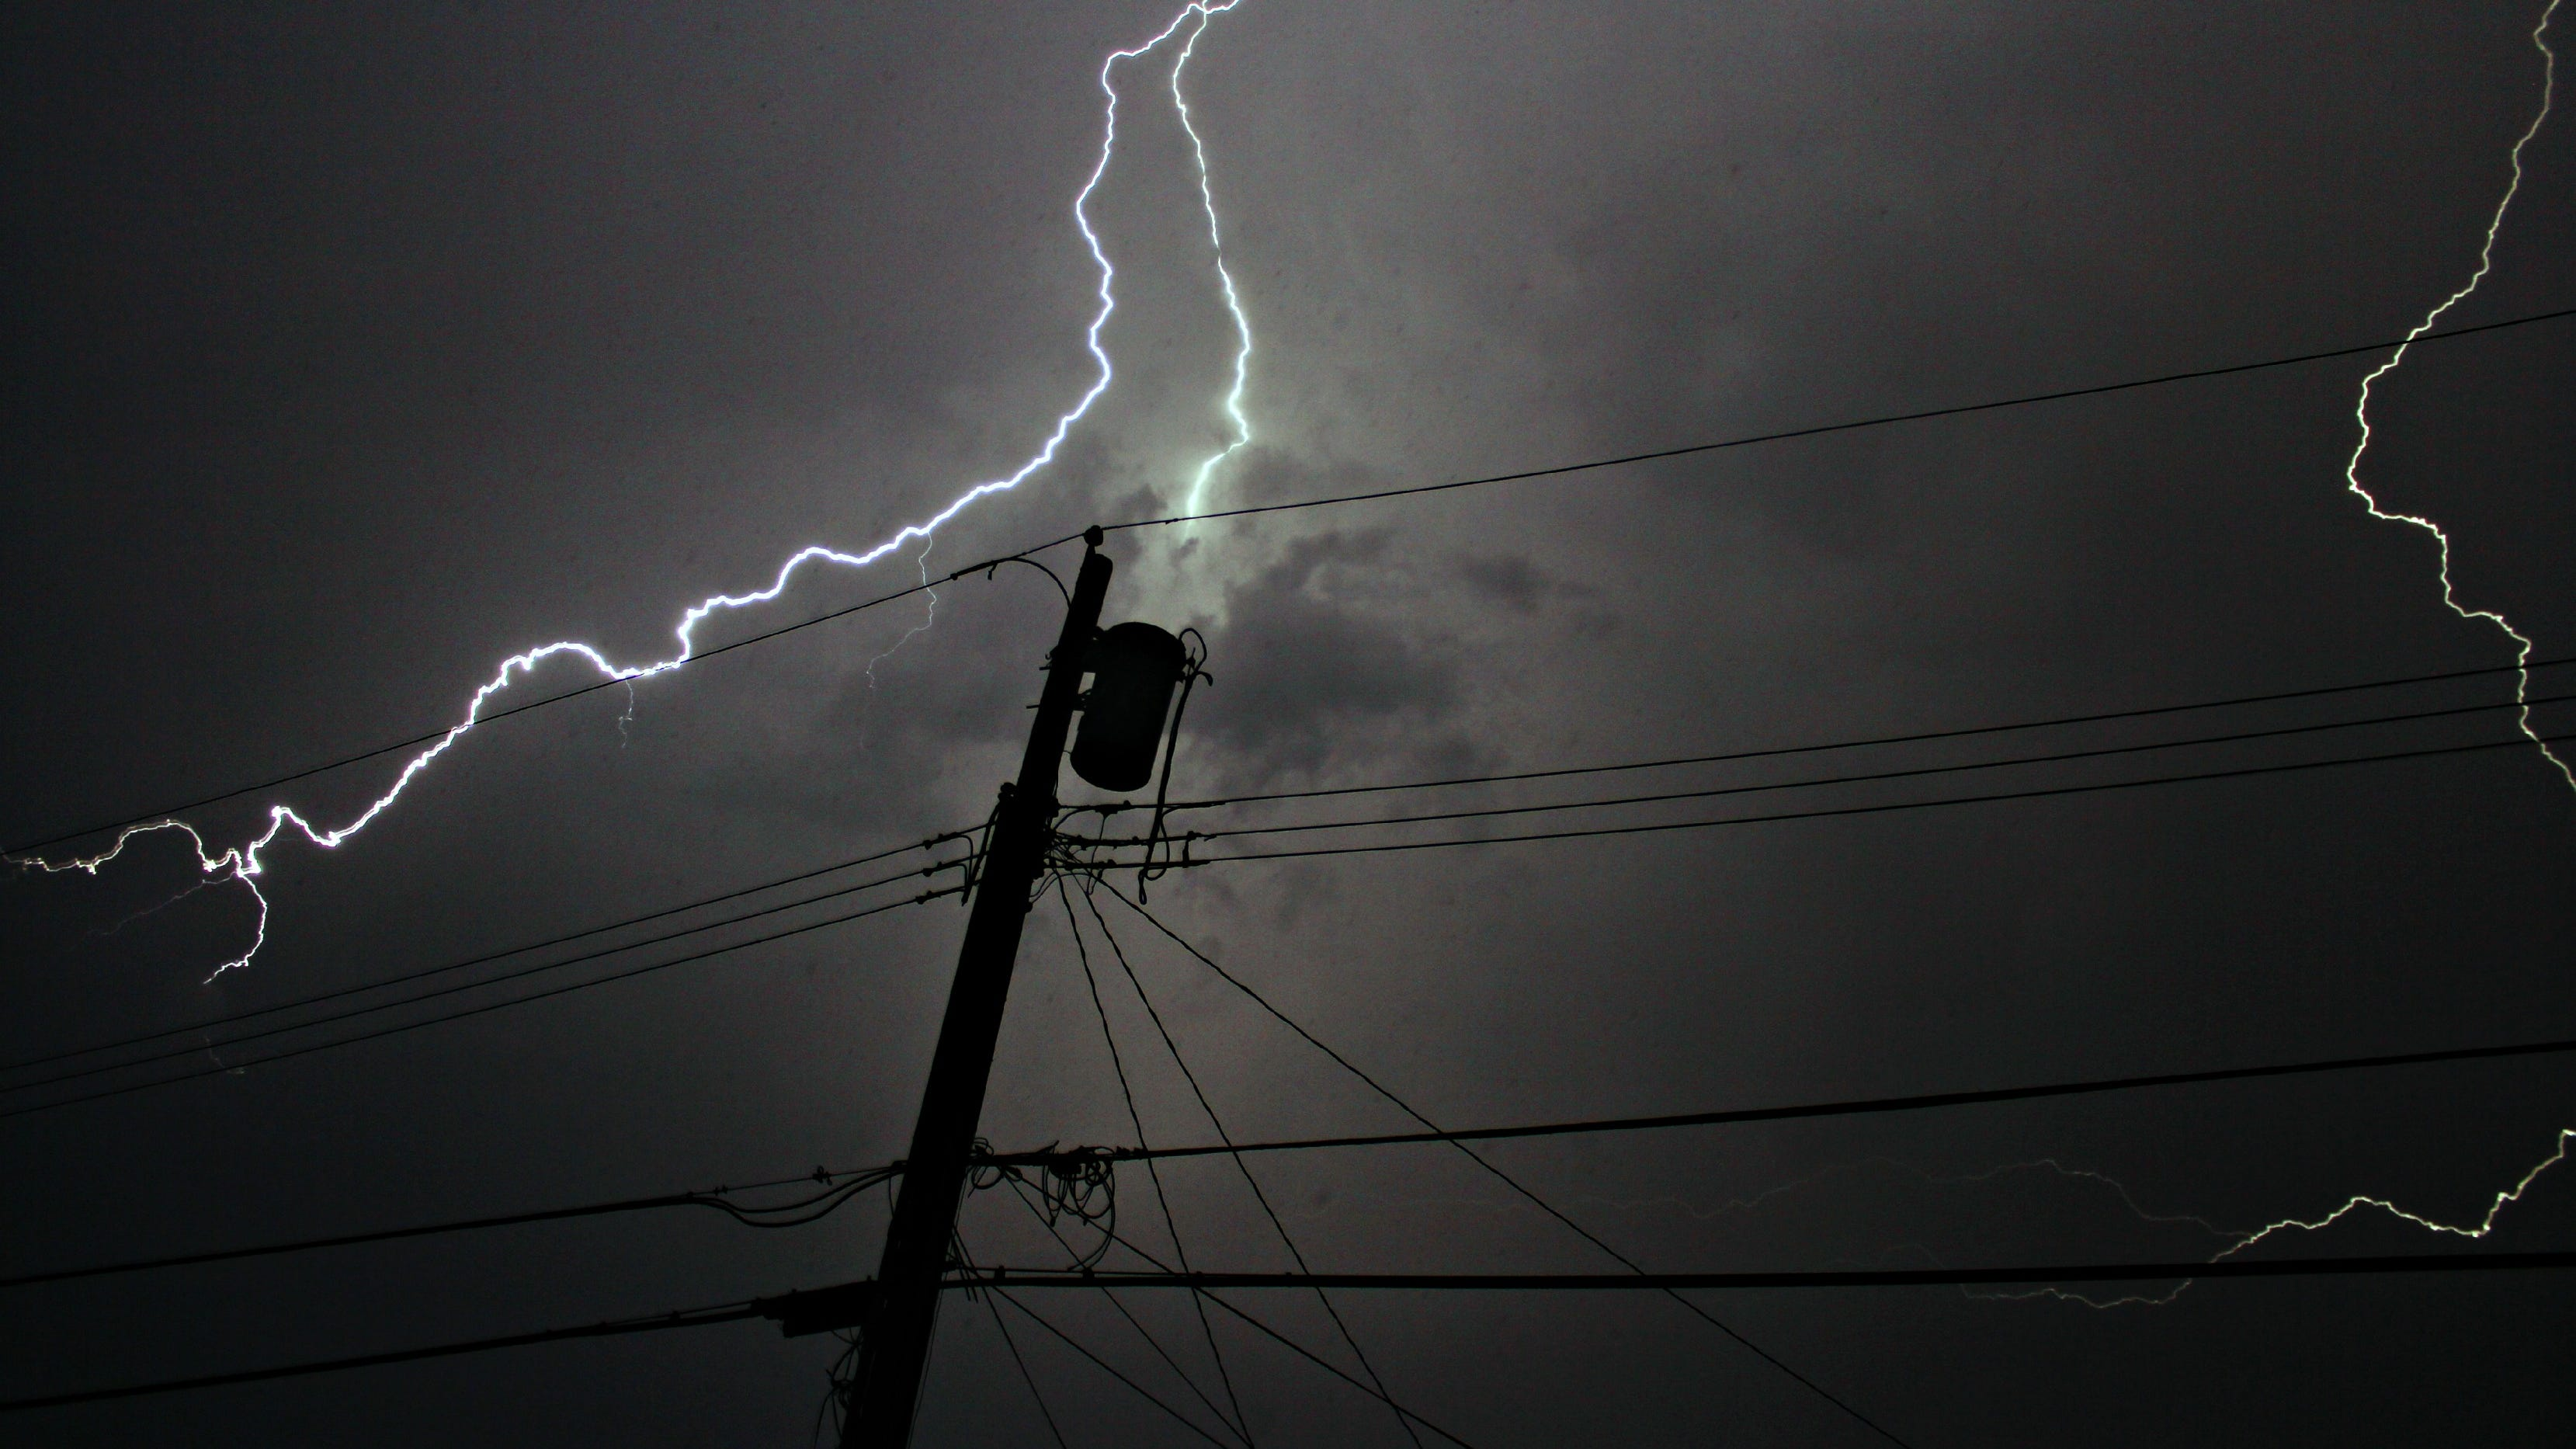 Tips for getting through power outages during, after storms